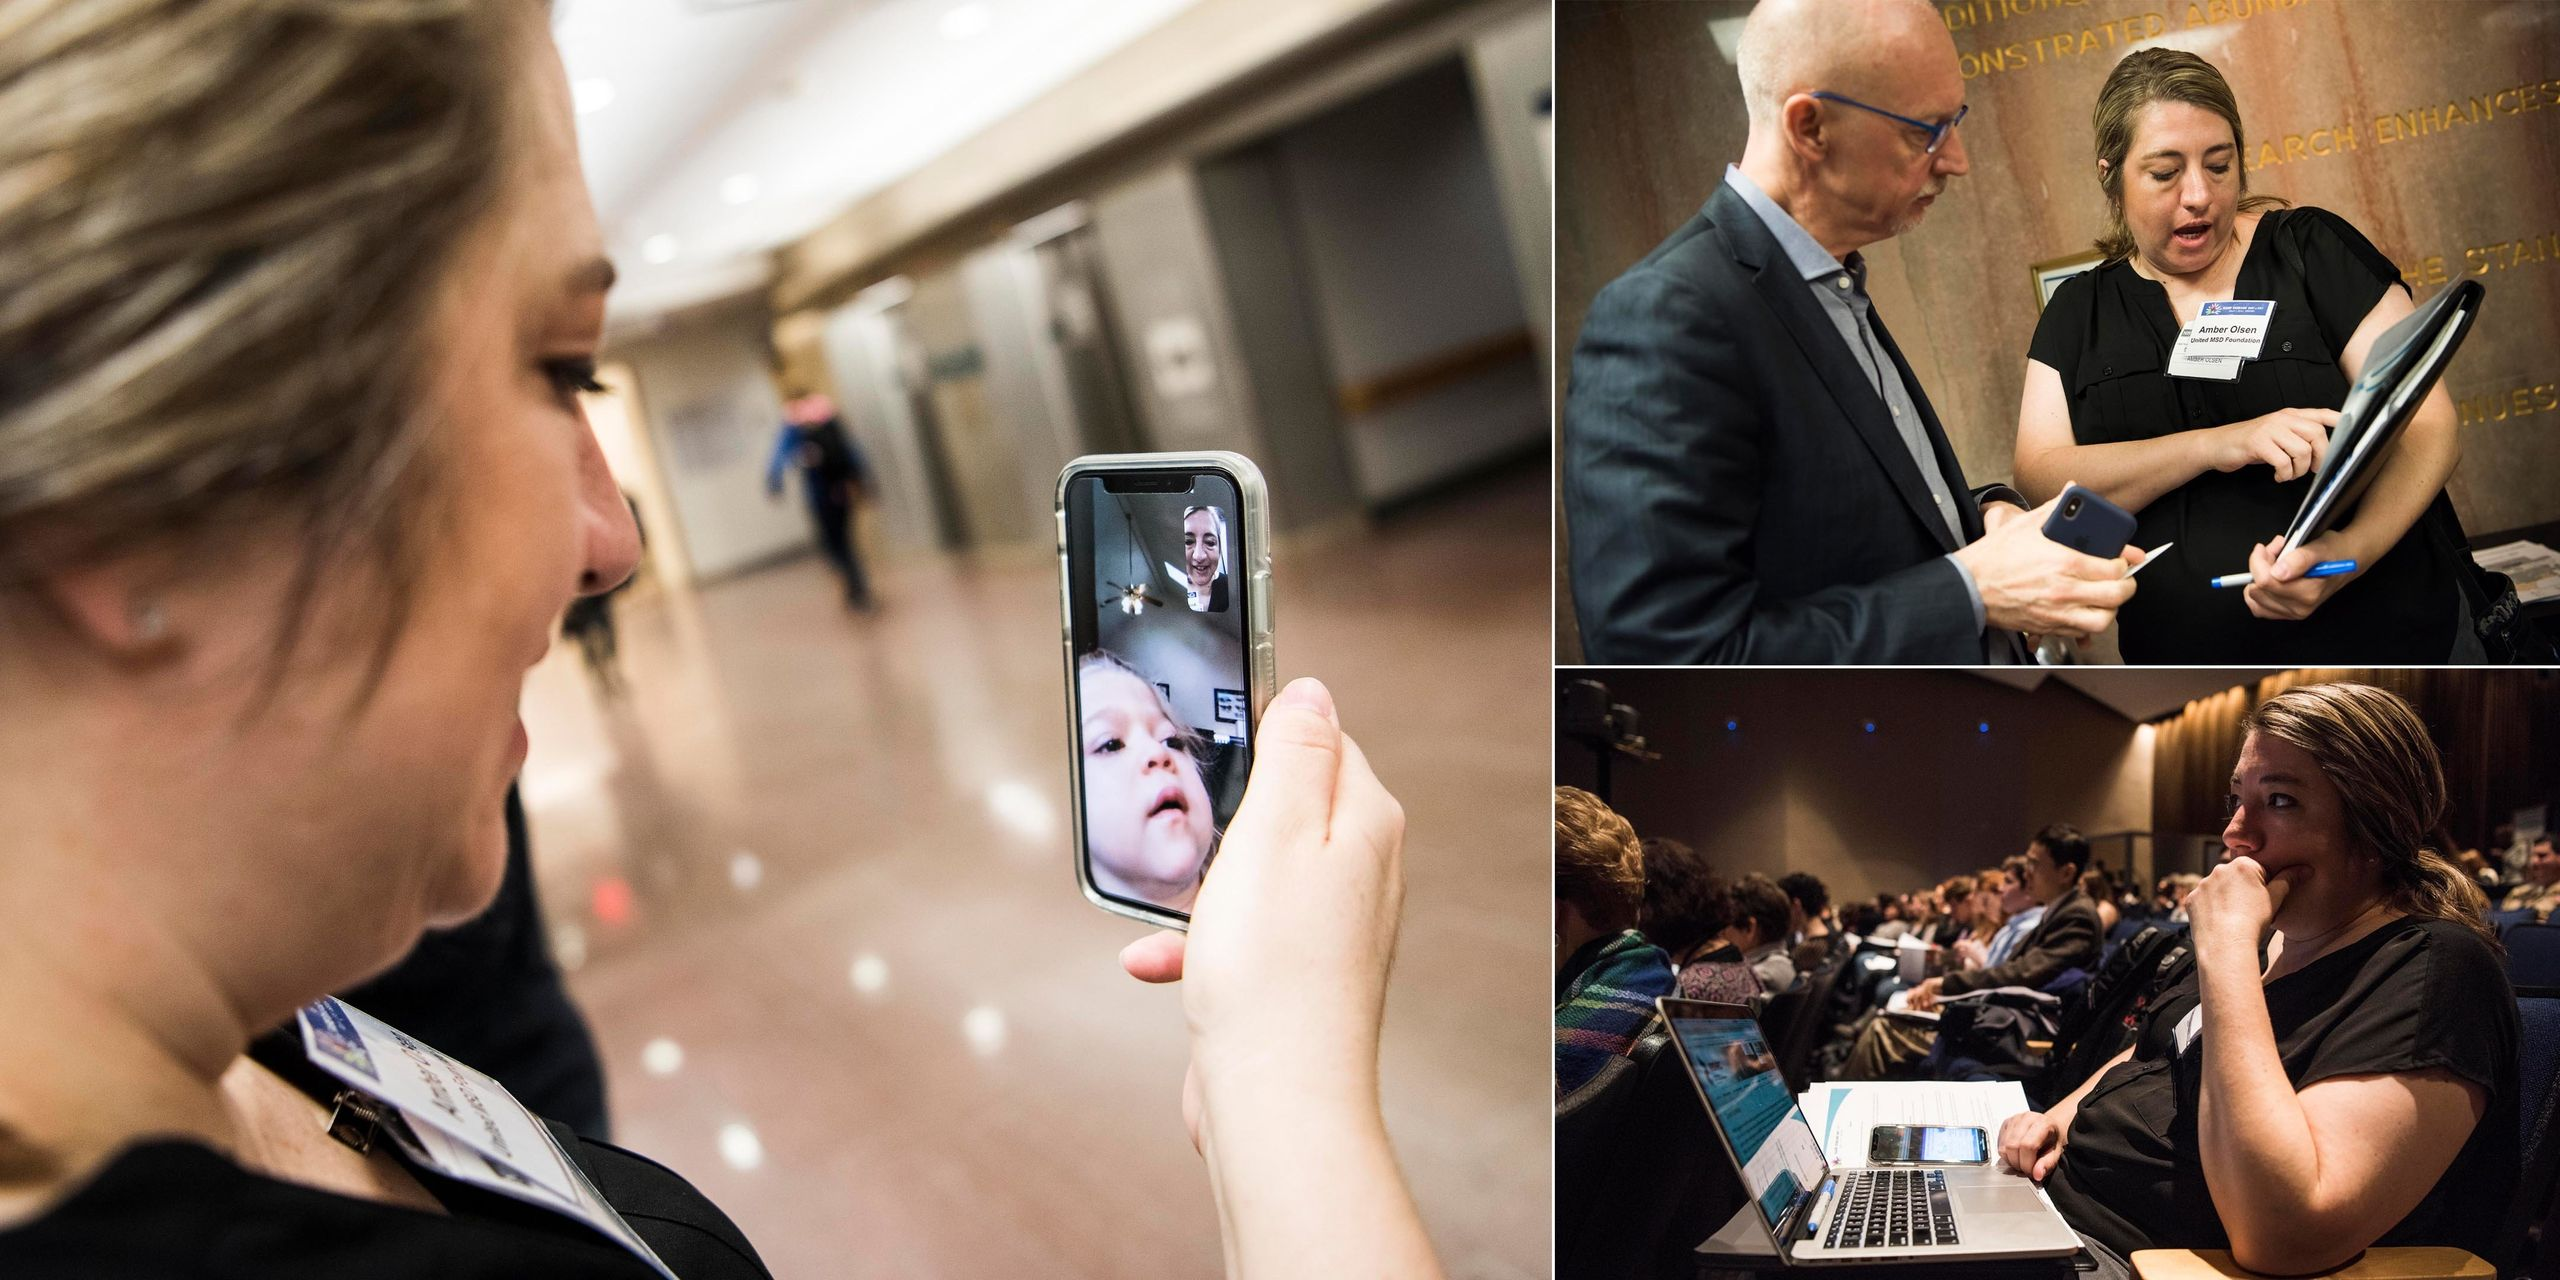 Amber FaceTimes with her family during a spare moment during Rare Disease Week at the NIH (left). She speaks with Sandy Macra